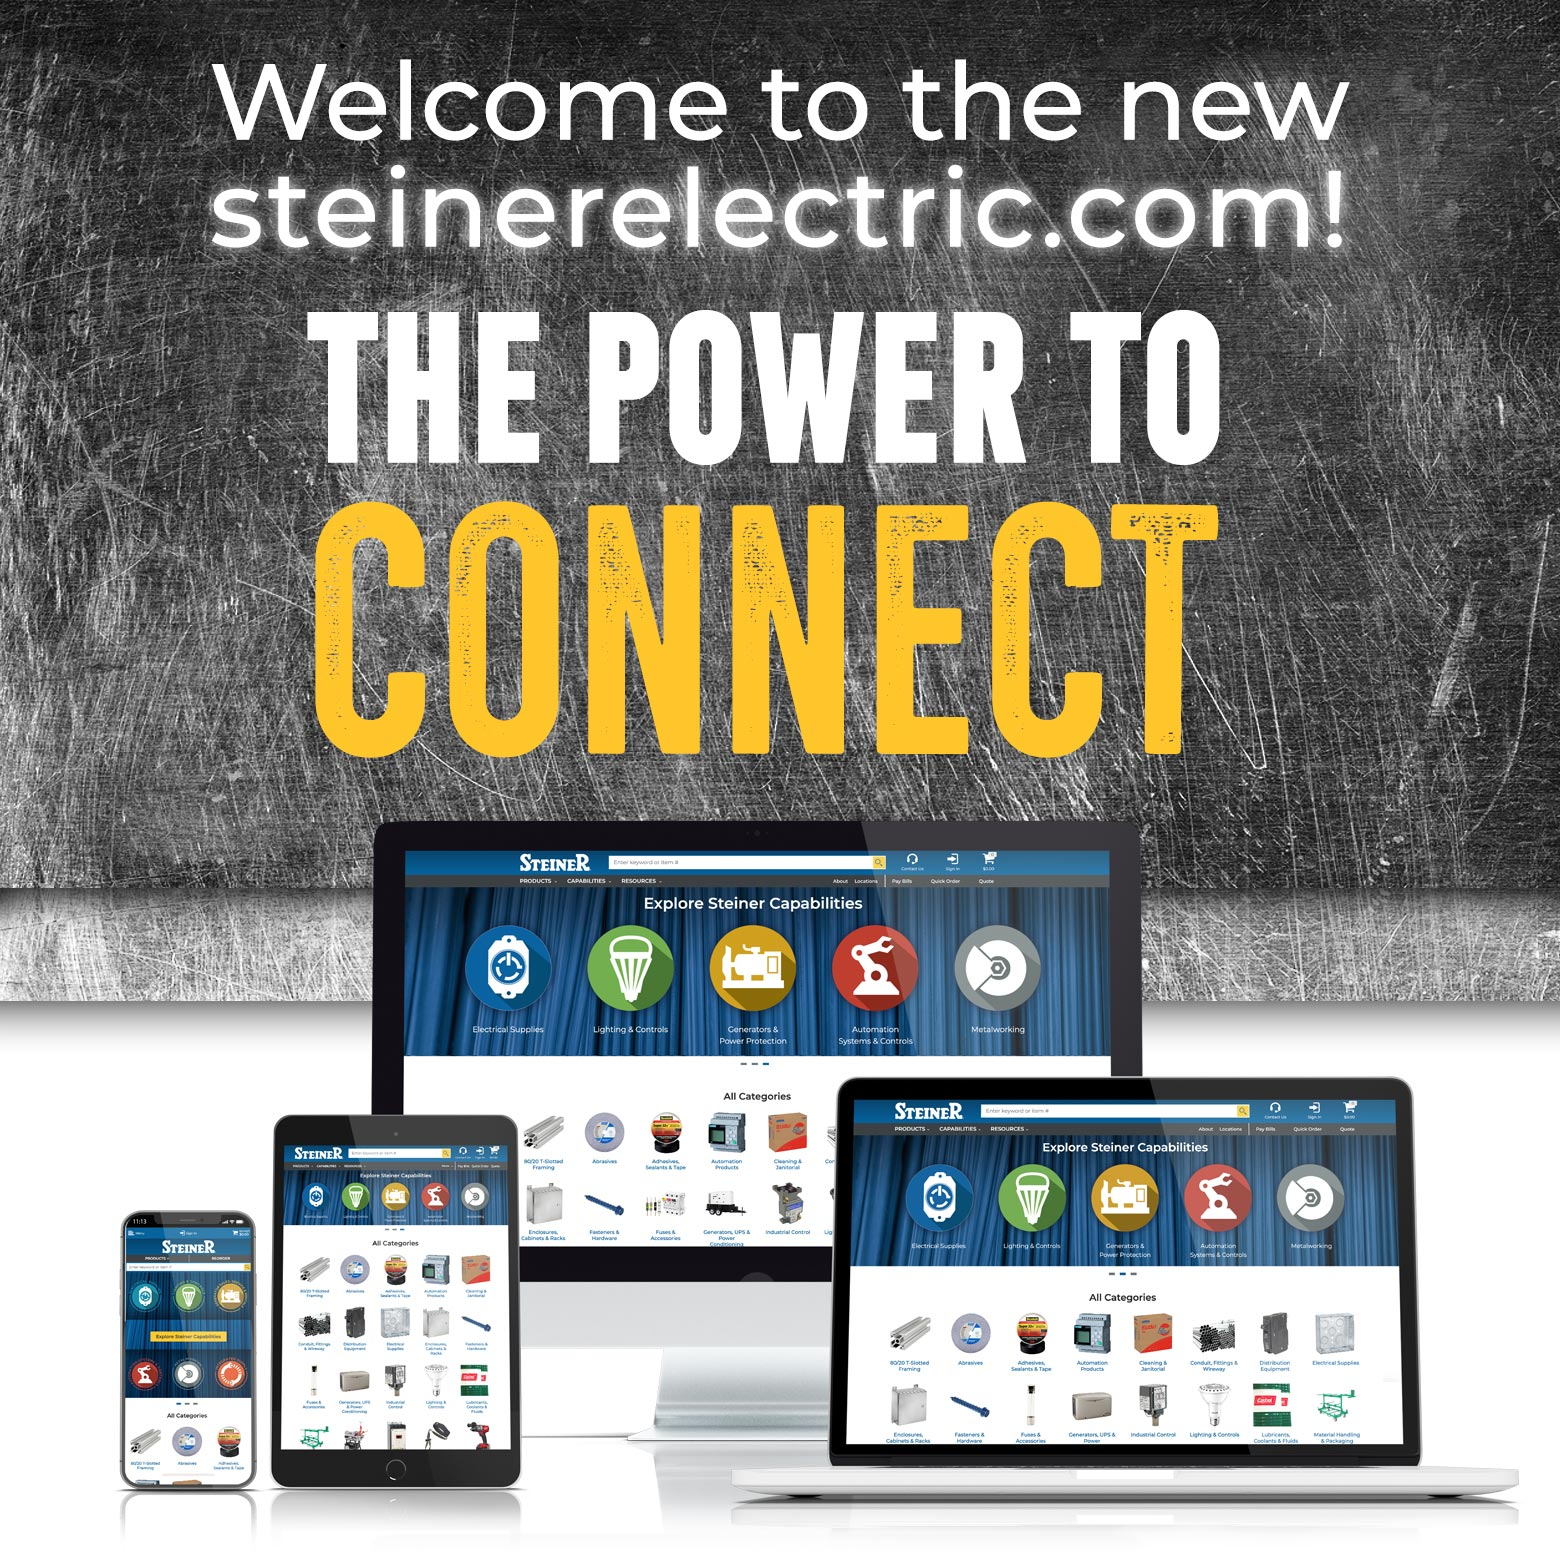 Welcome to steinerelectric.com! THE POWER TO CONNECT